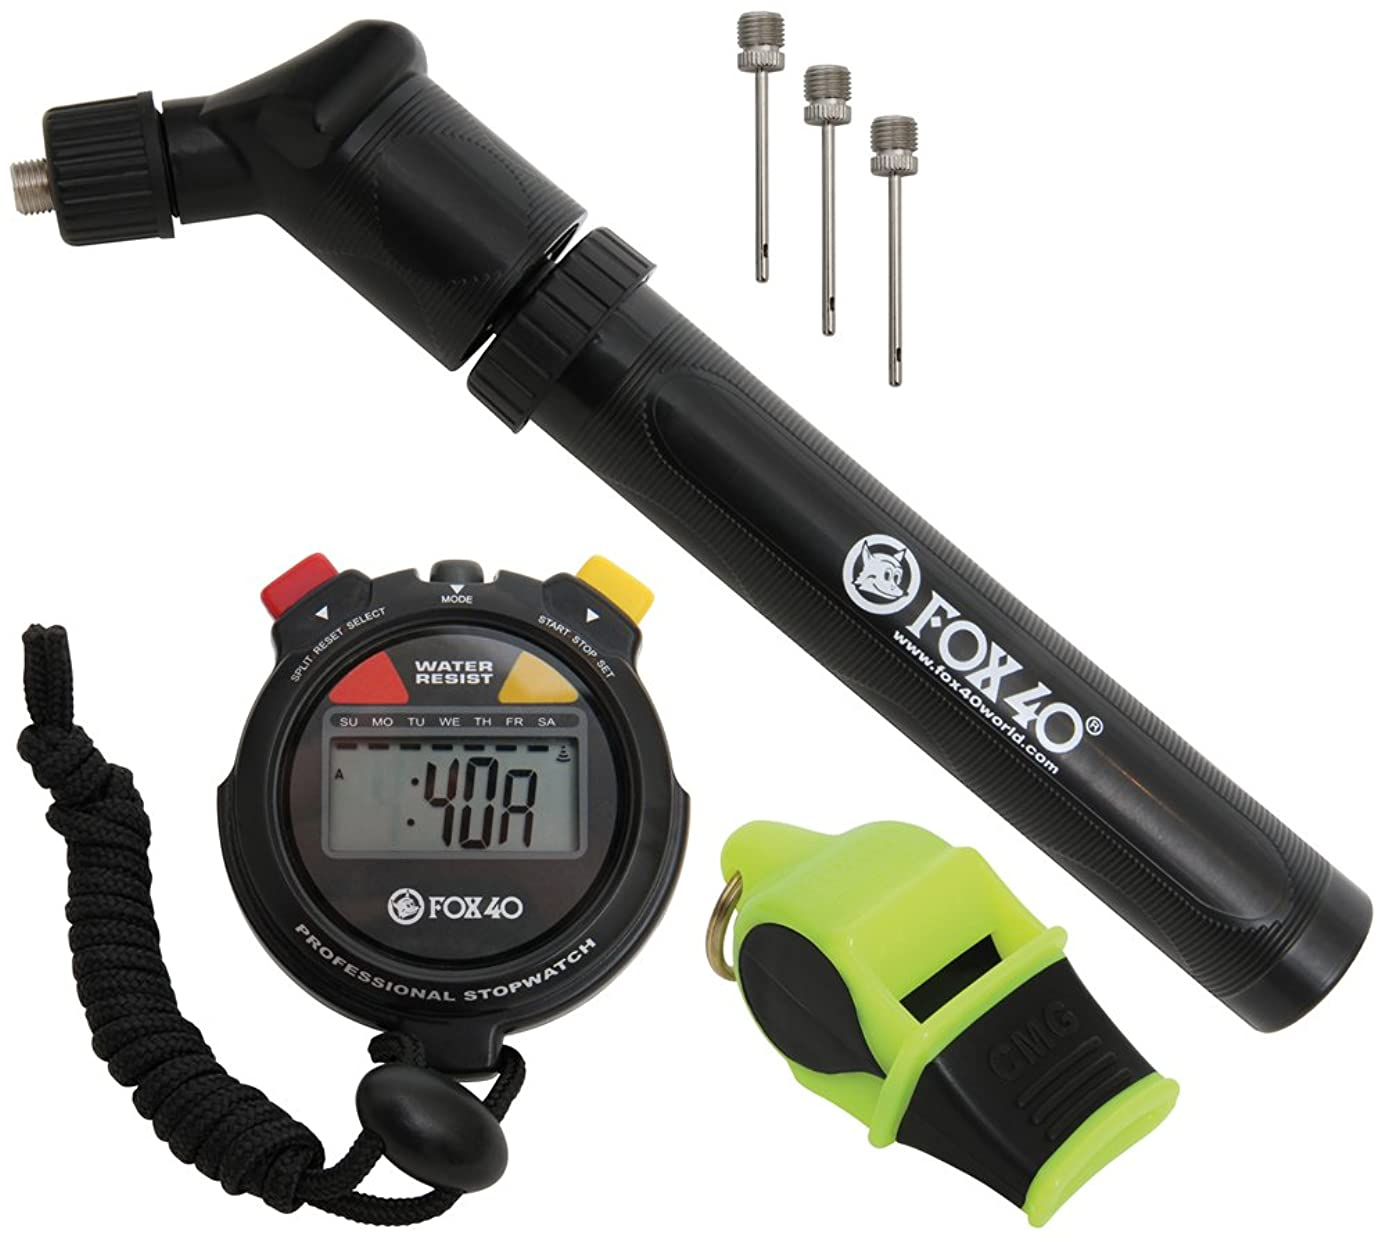 Fox 40 Games Kit - Pump, Whistle, Needles & Stopwatch